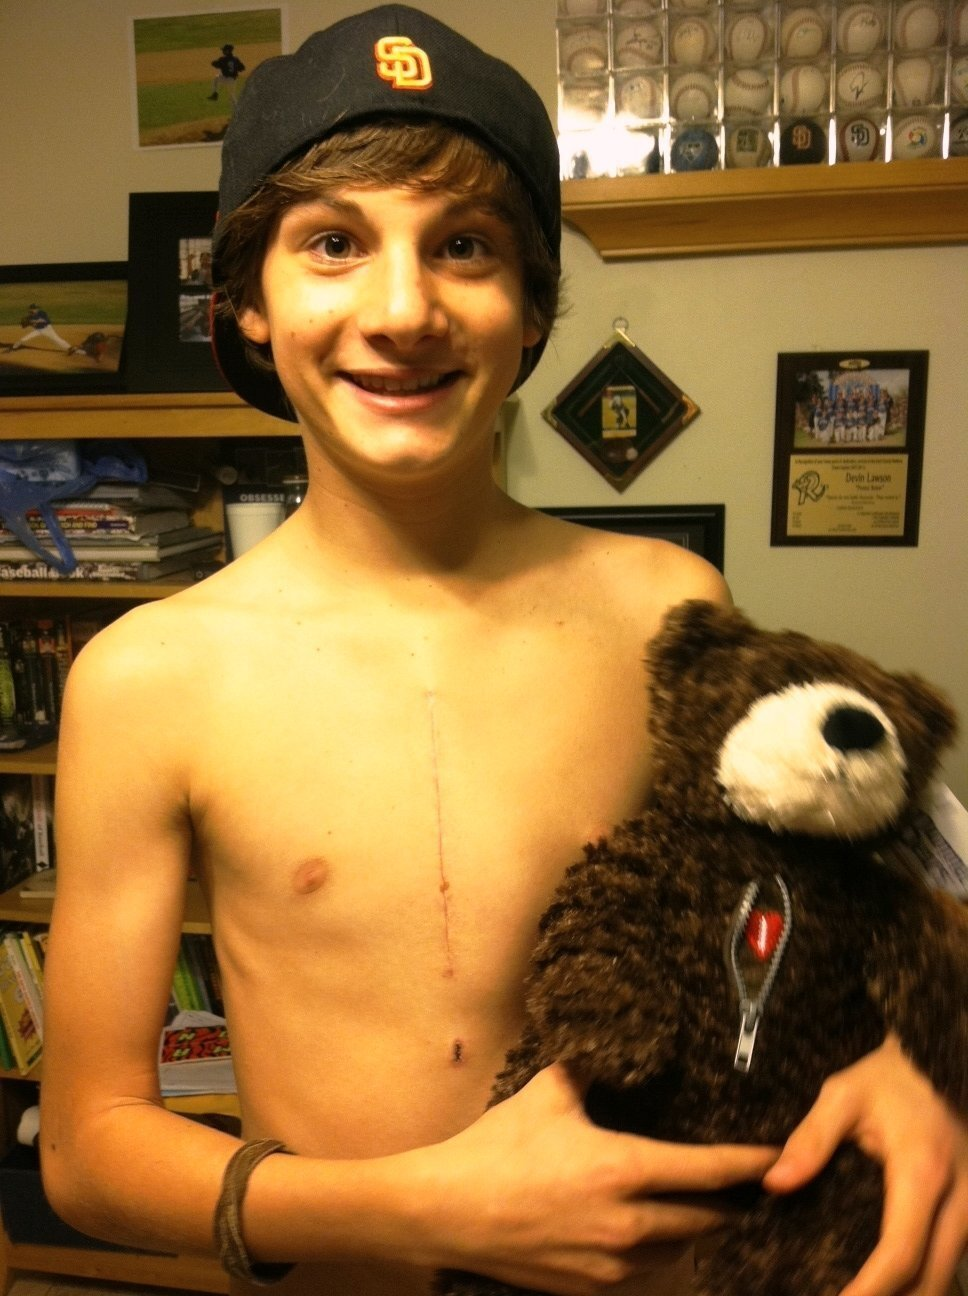 One boy's legacy: free teen heart screenings to save lives from